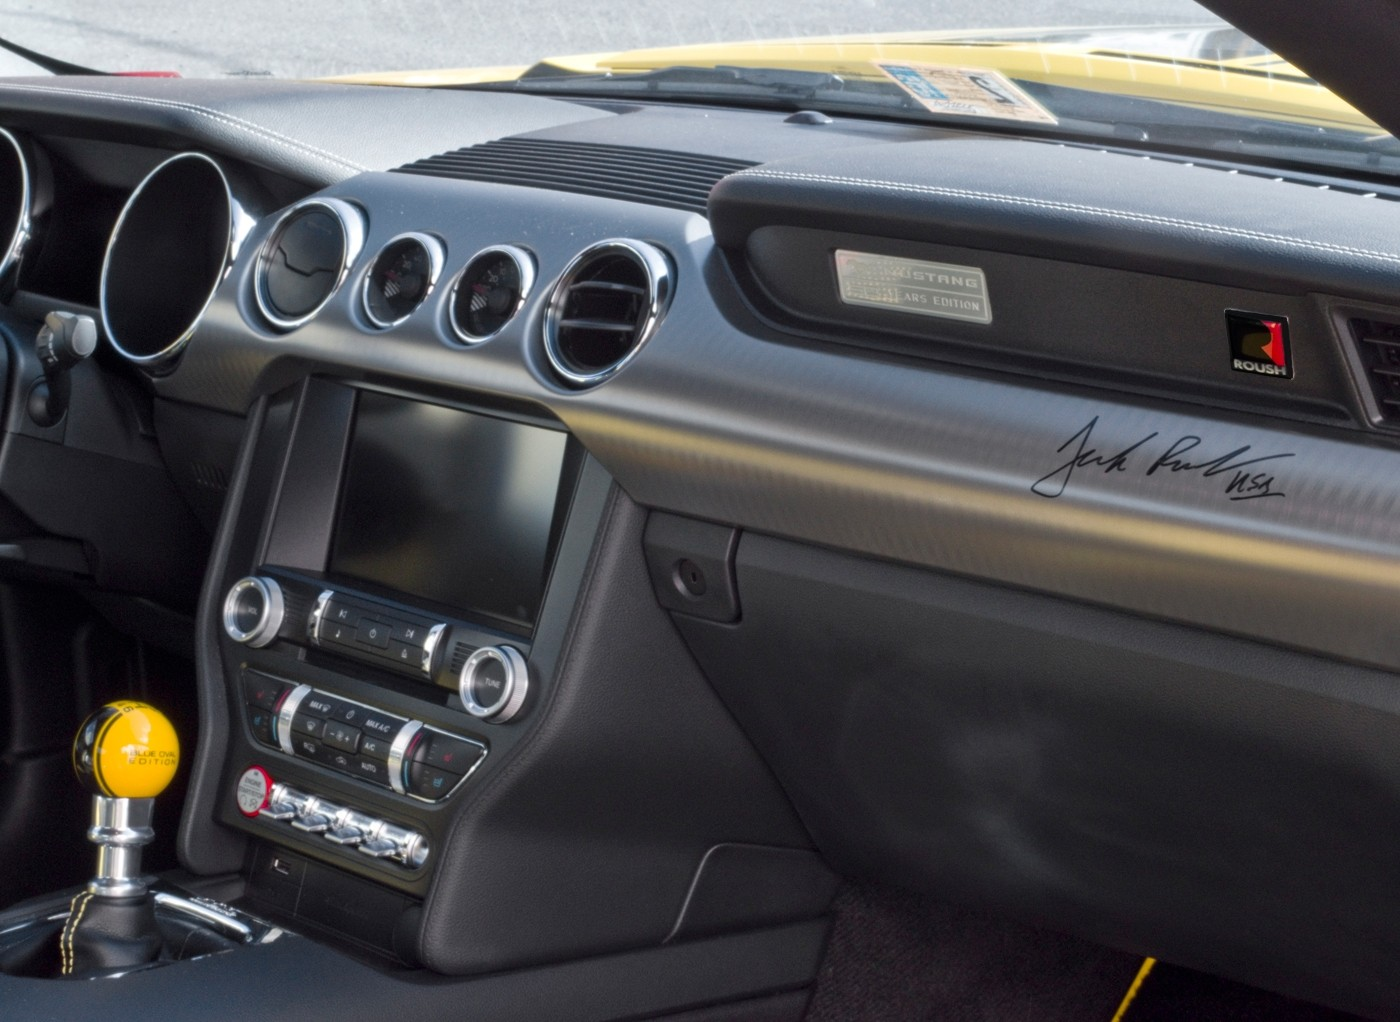 Ford Mustang Roush Stage Rs 1 2 3 Interior Dash Console